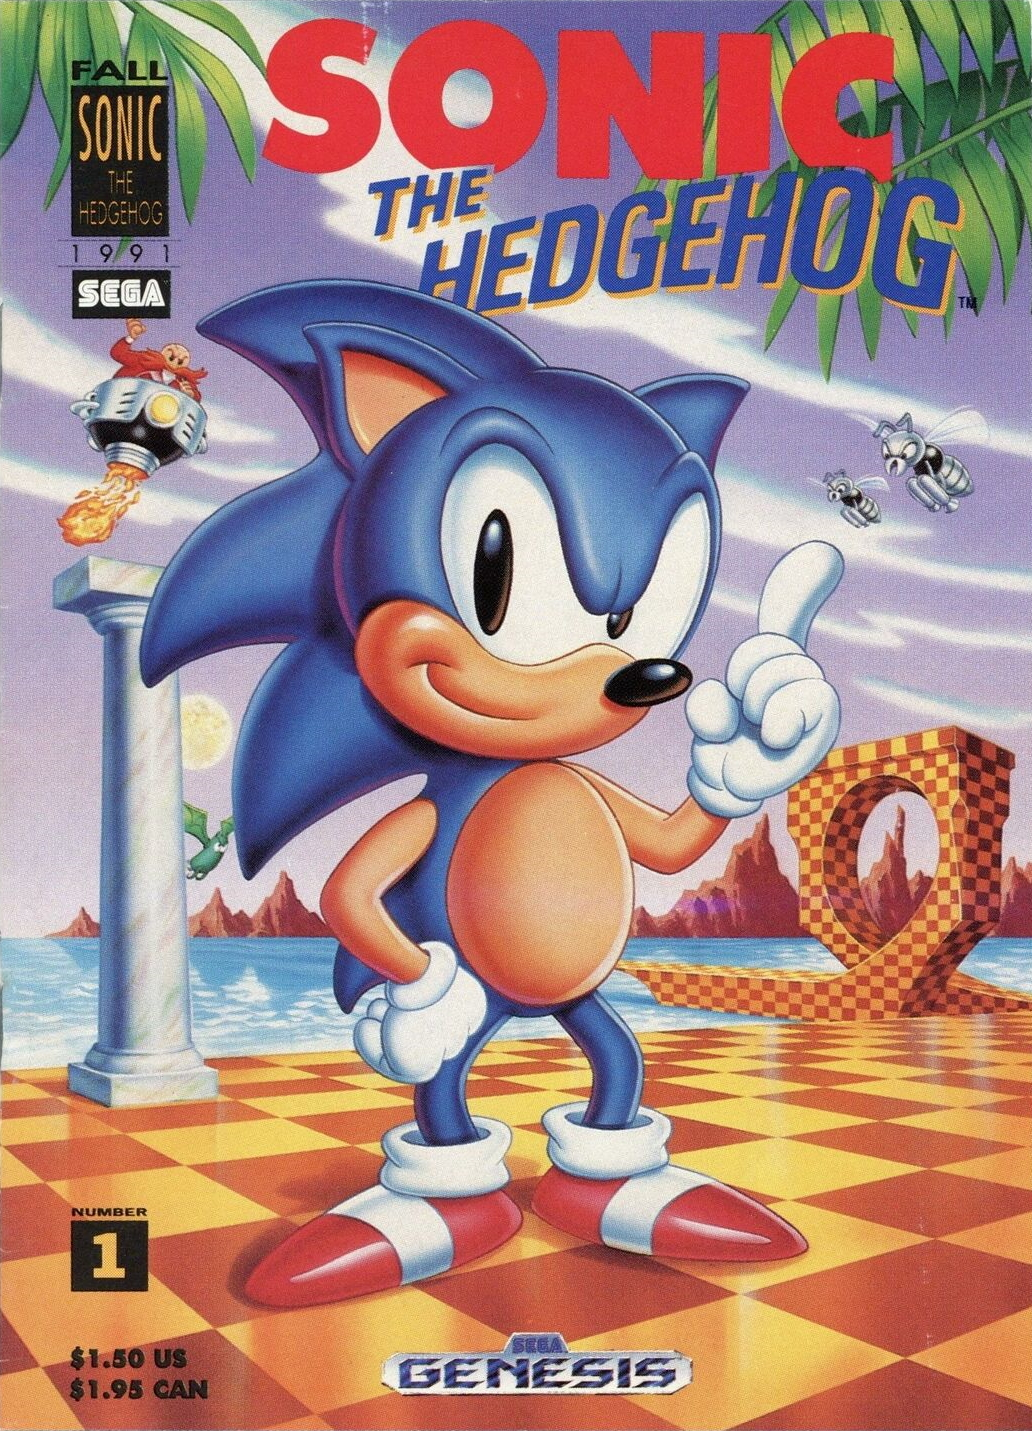 Image result for Sonic The Hedgehog 1991 poster